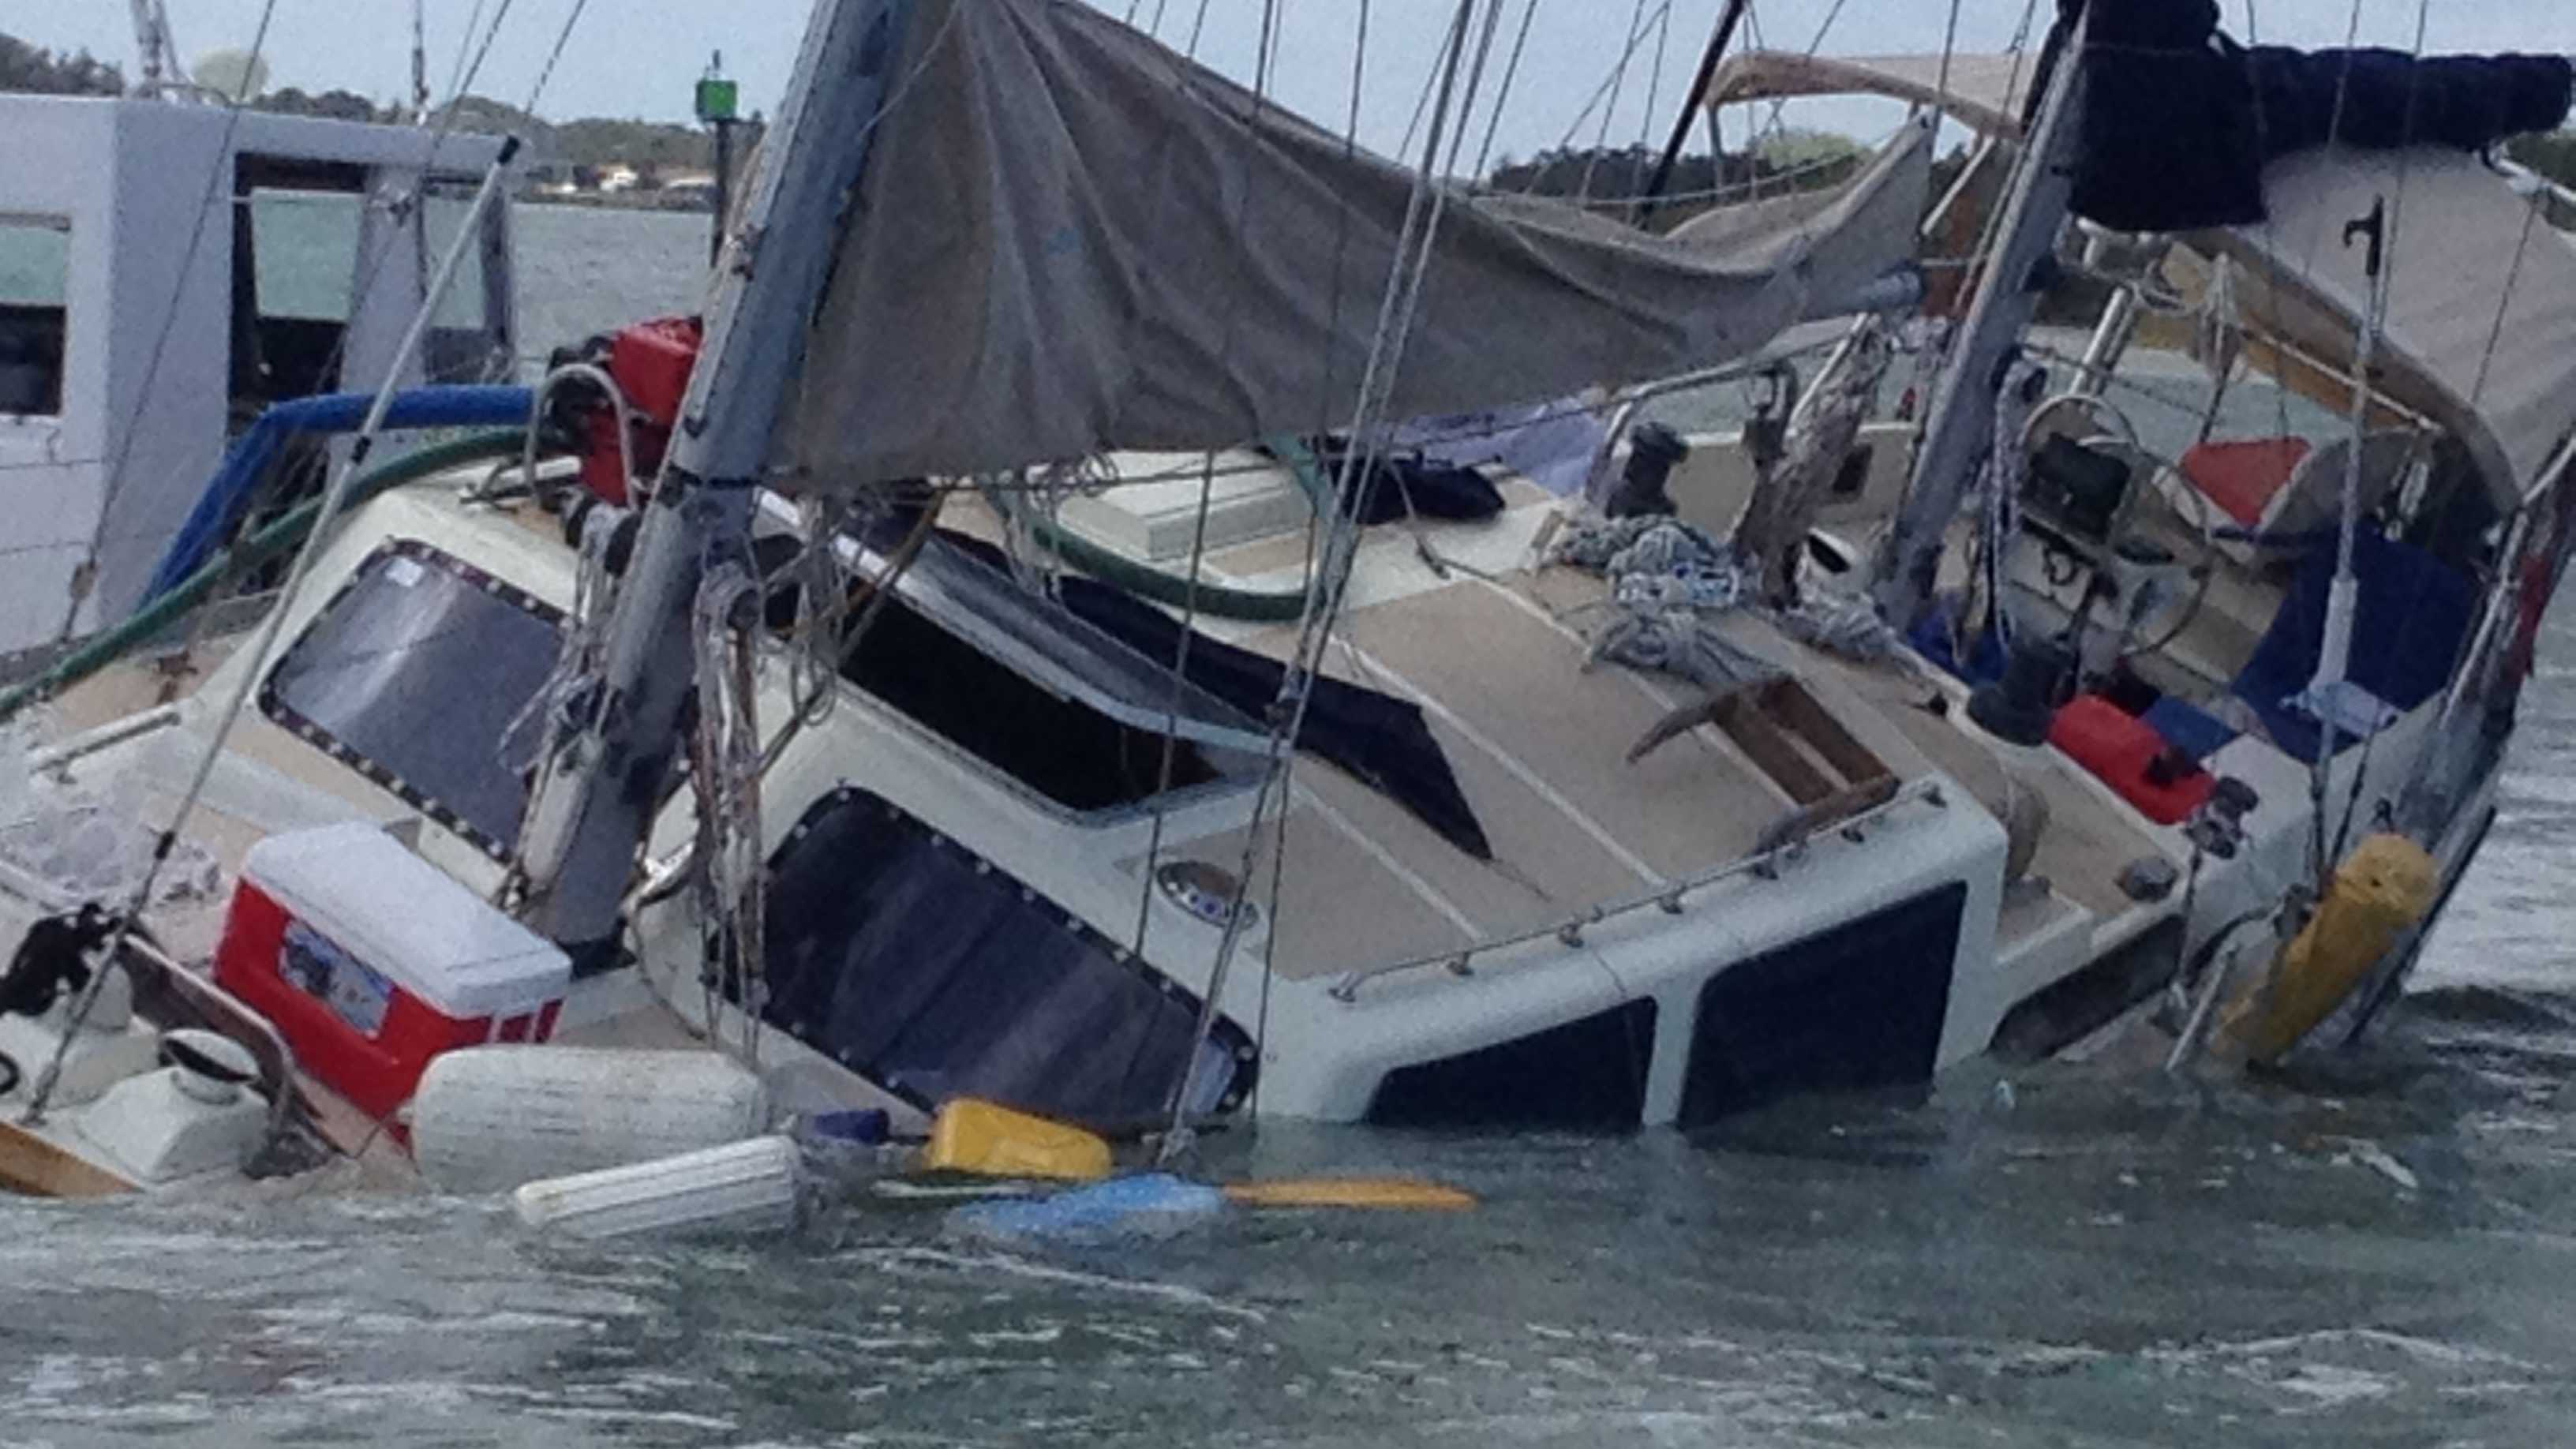 A 42-foot sailboat went down in the Intracoastal Waterway between Ponce Inlet and New Smyrna Beach Friday.